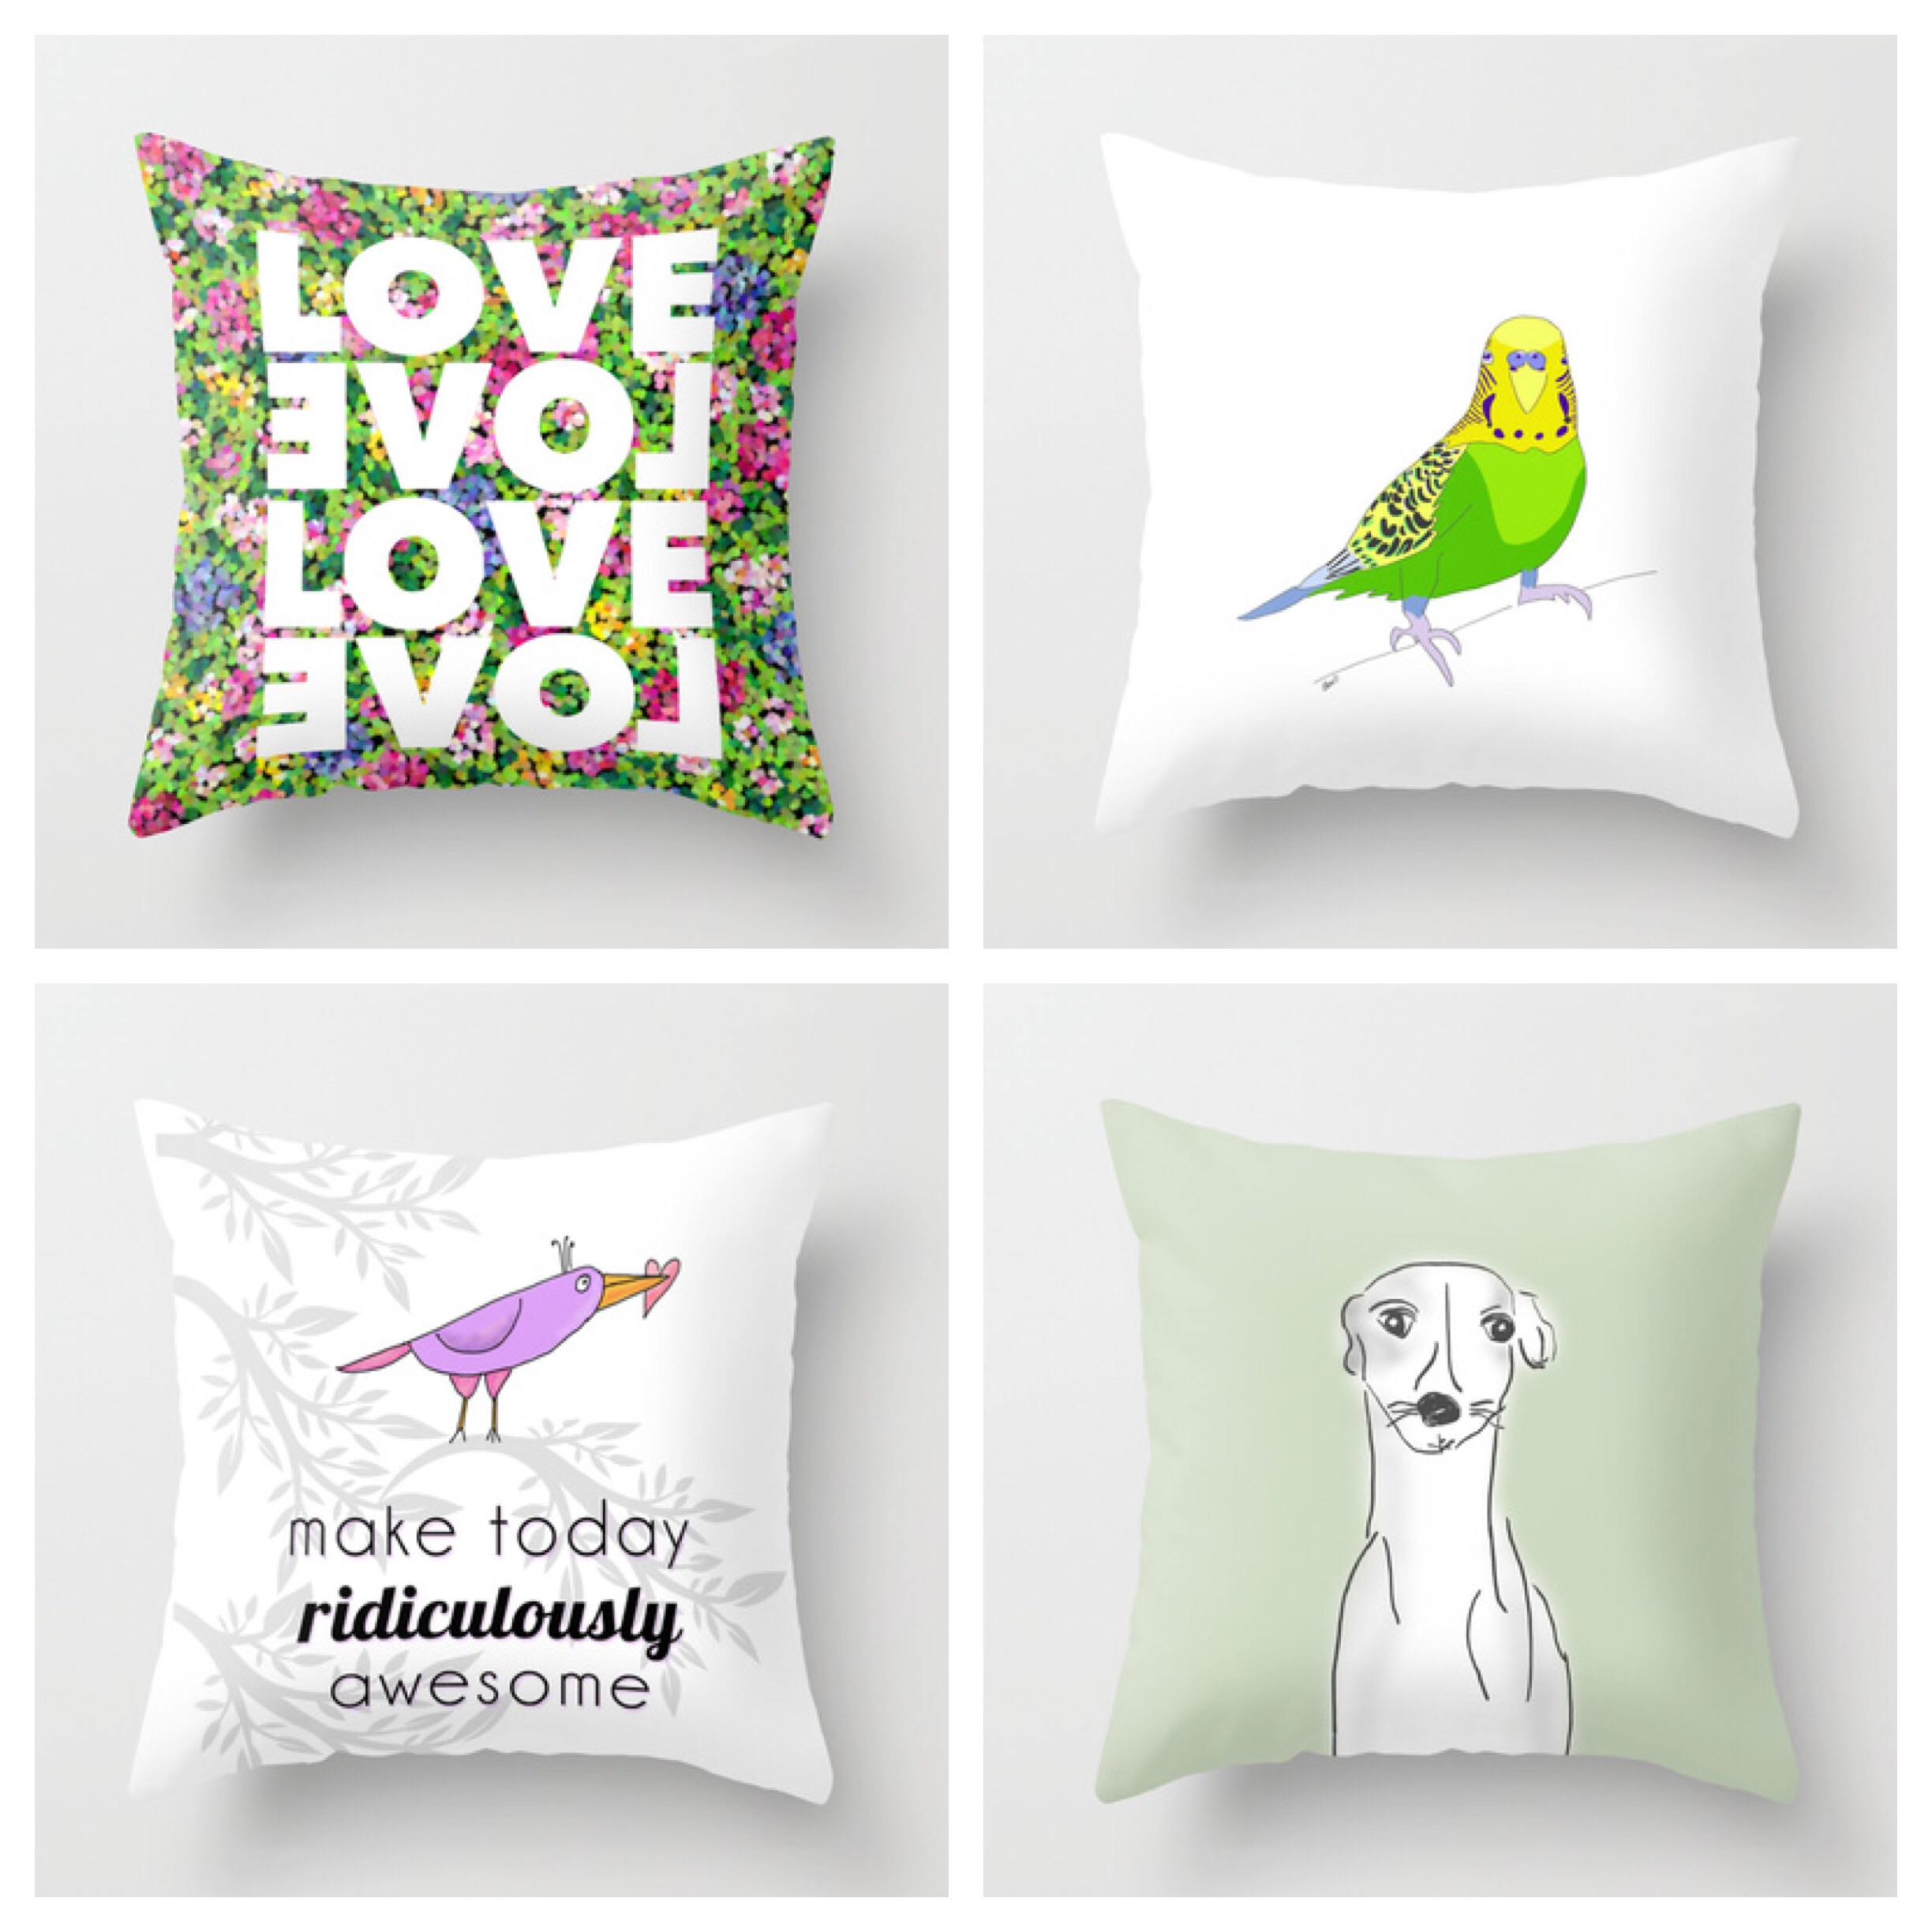 Pillows by Chris Olson at Society6